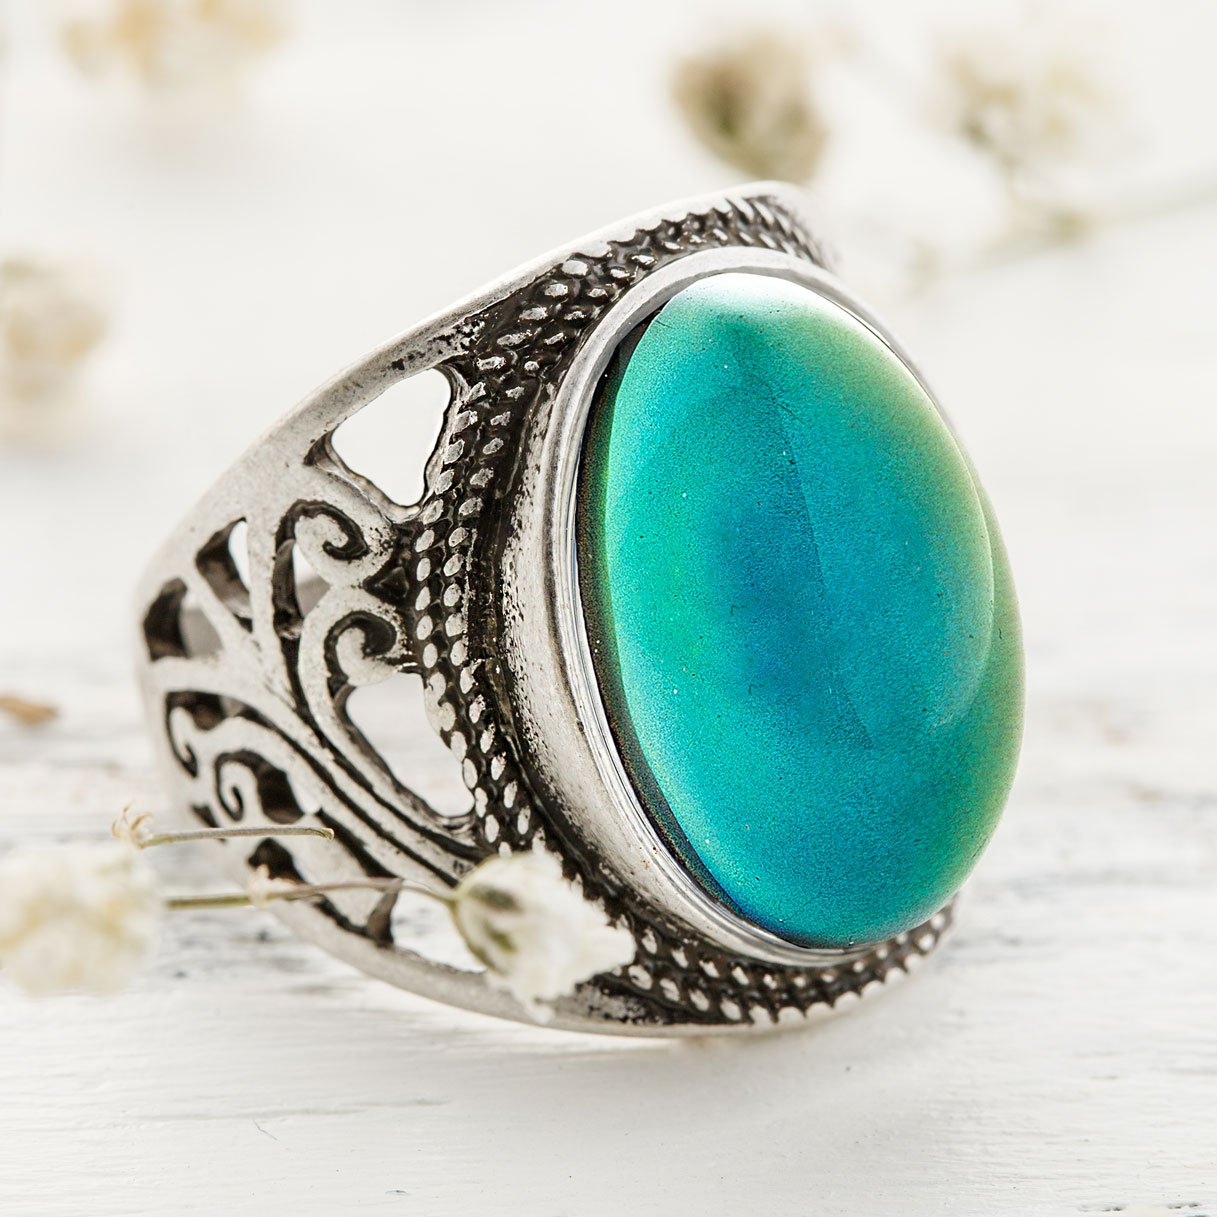 New-Age Mood Ring